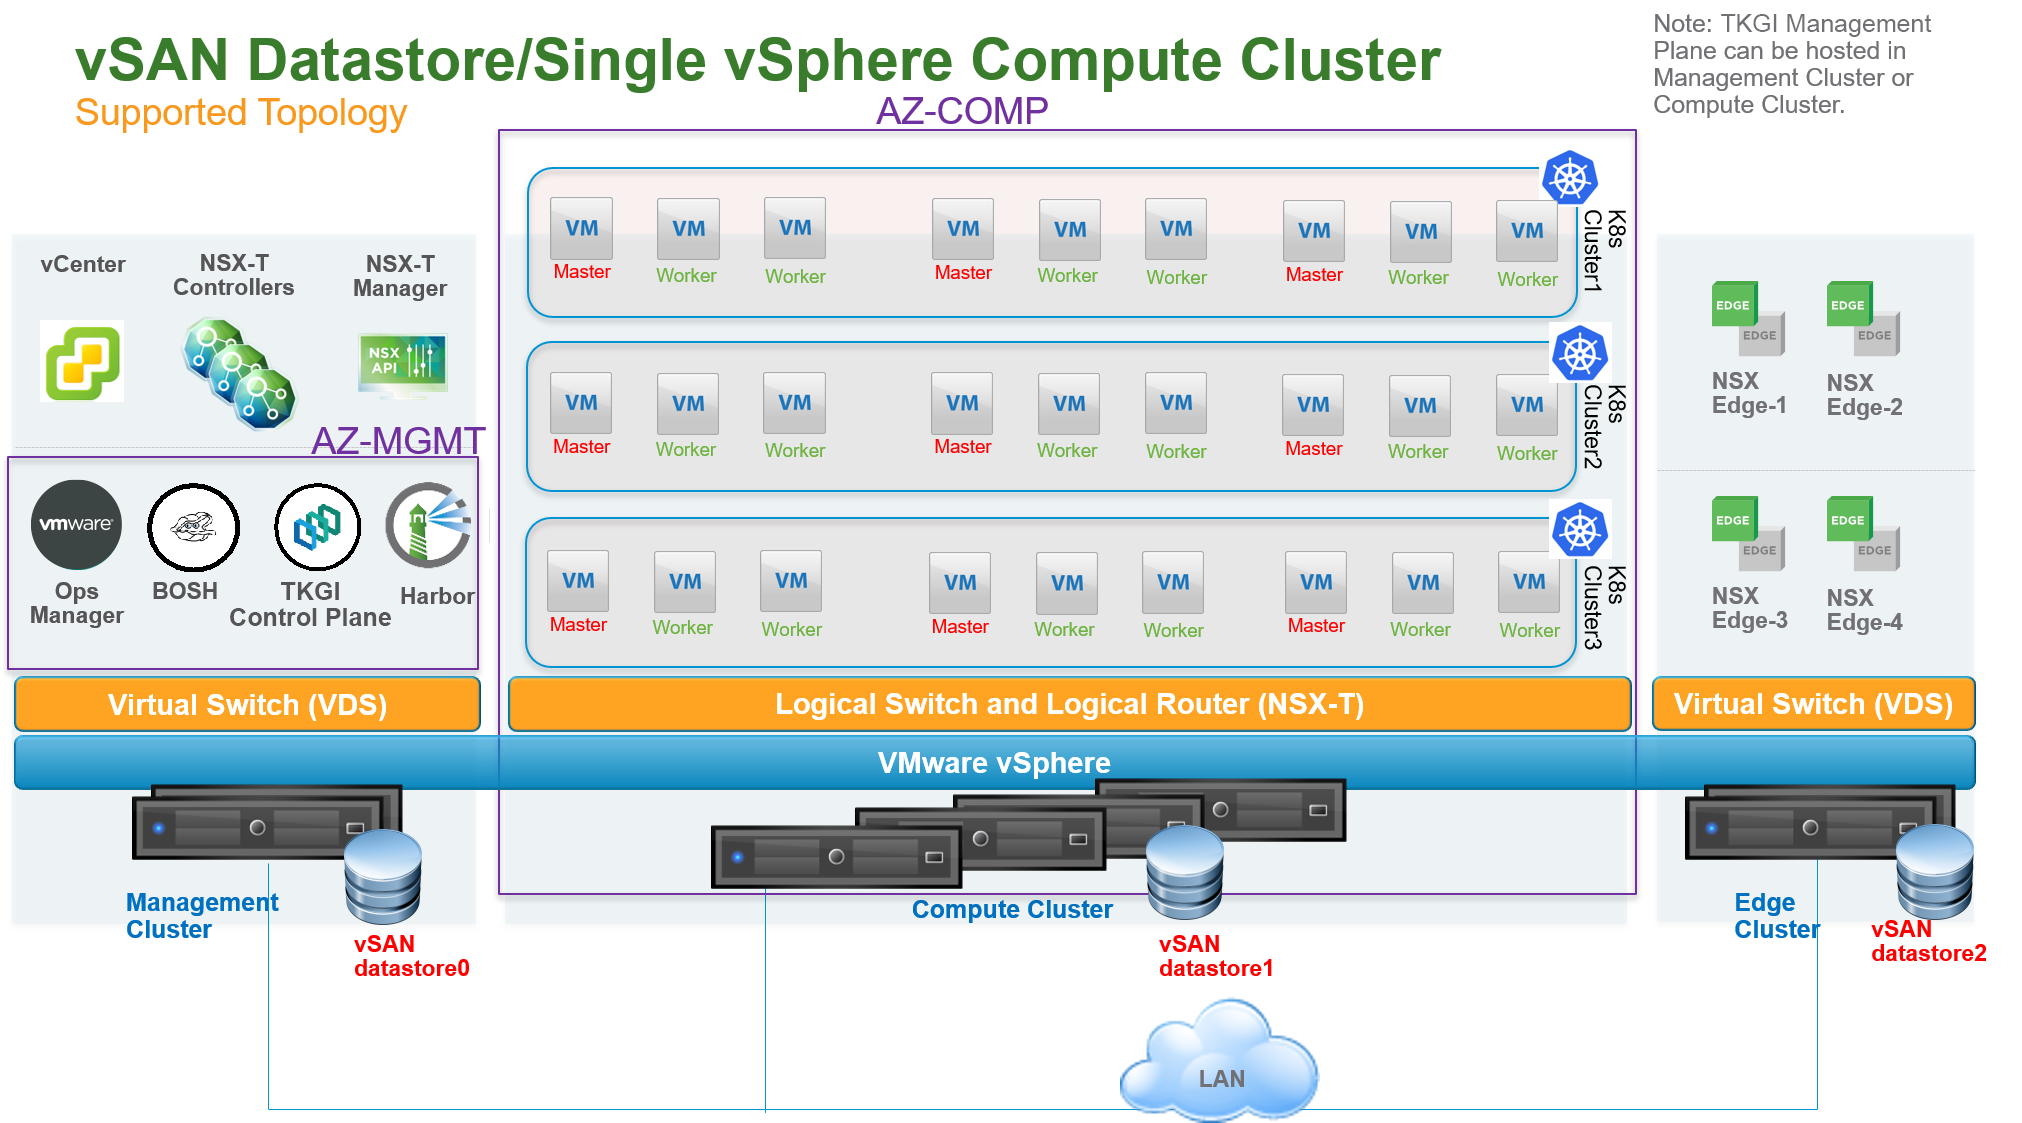 Single vSphere compute cluster with vSAN datastore